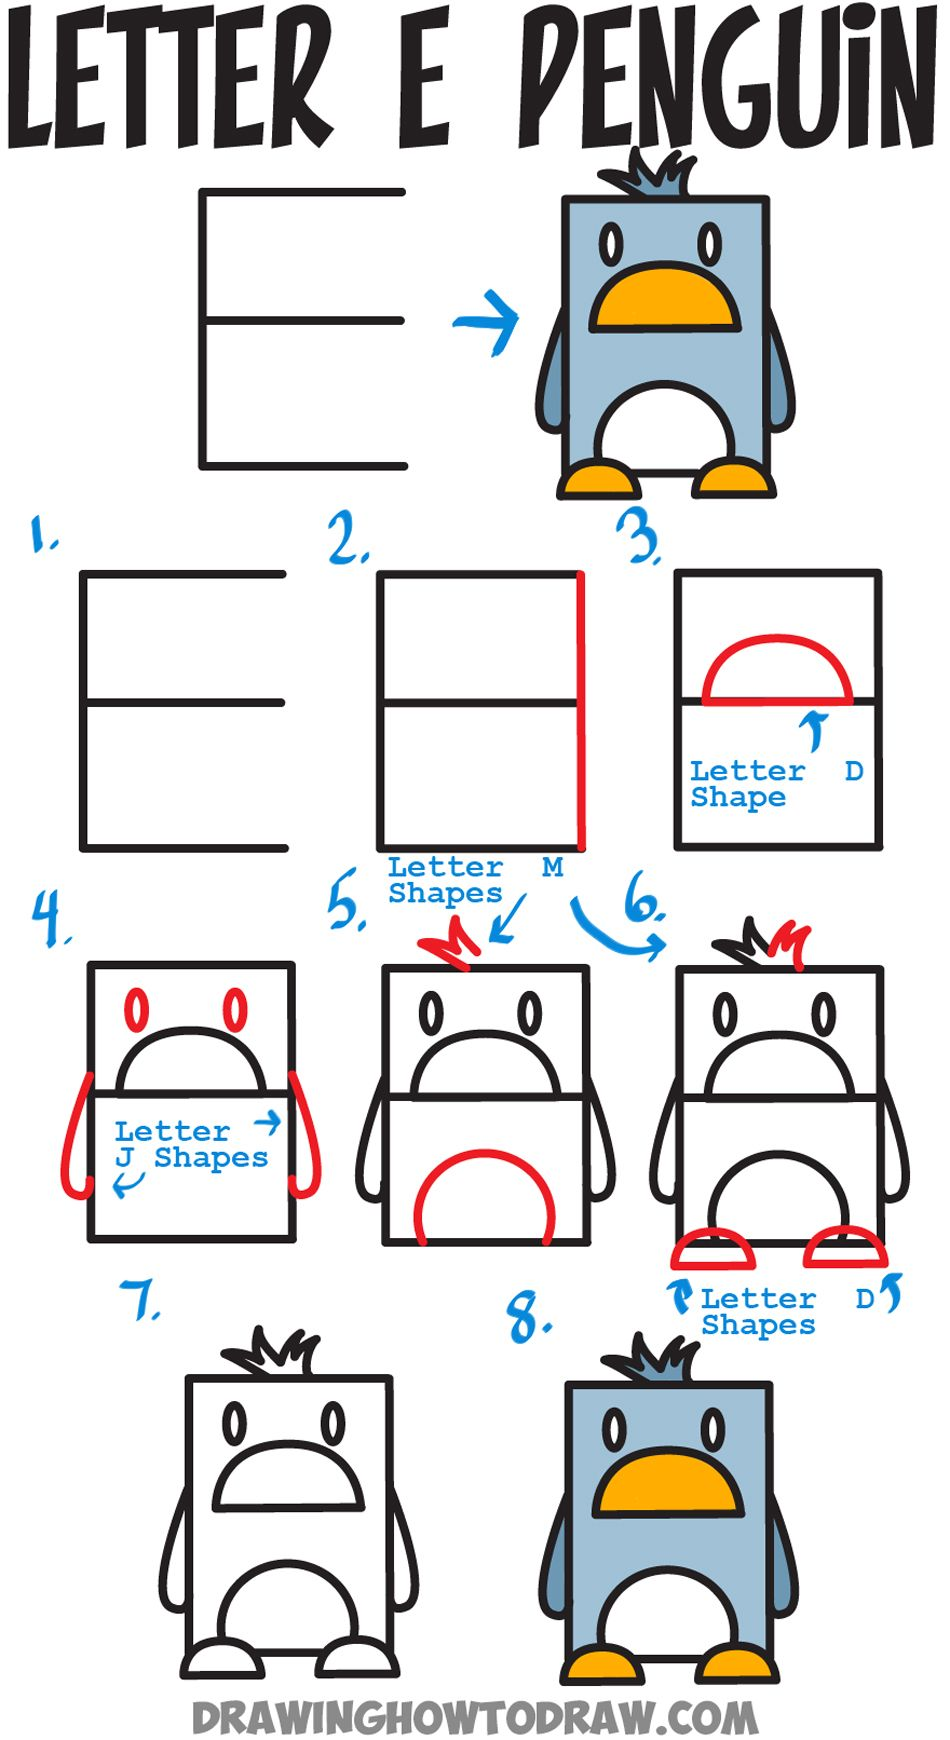 Cartoon Characters 7 Letters : How to draw a cartoon penguin from uppercase letter e